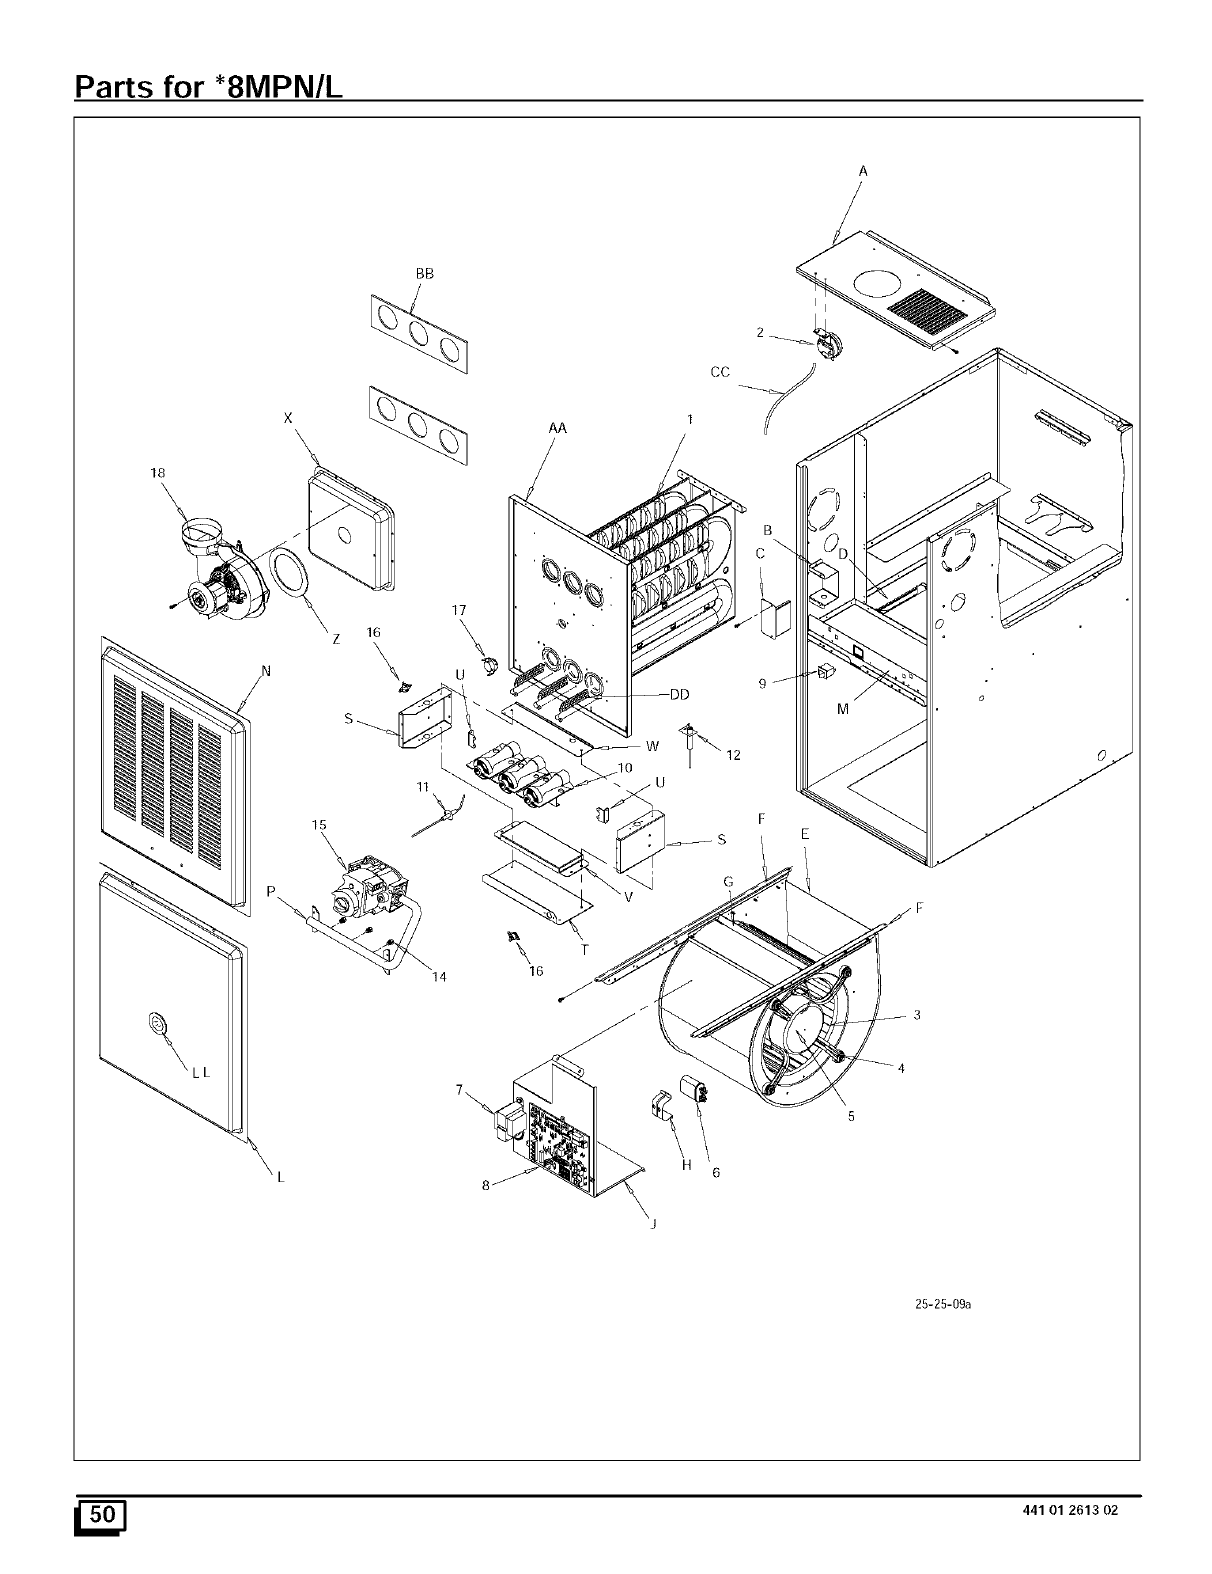 Page 50 of Sears Furnace N8MPN075B12B1 User Guide